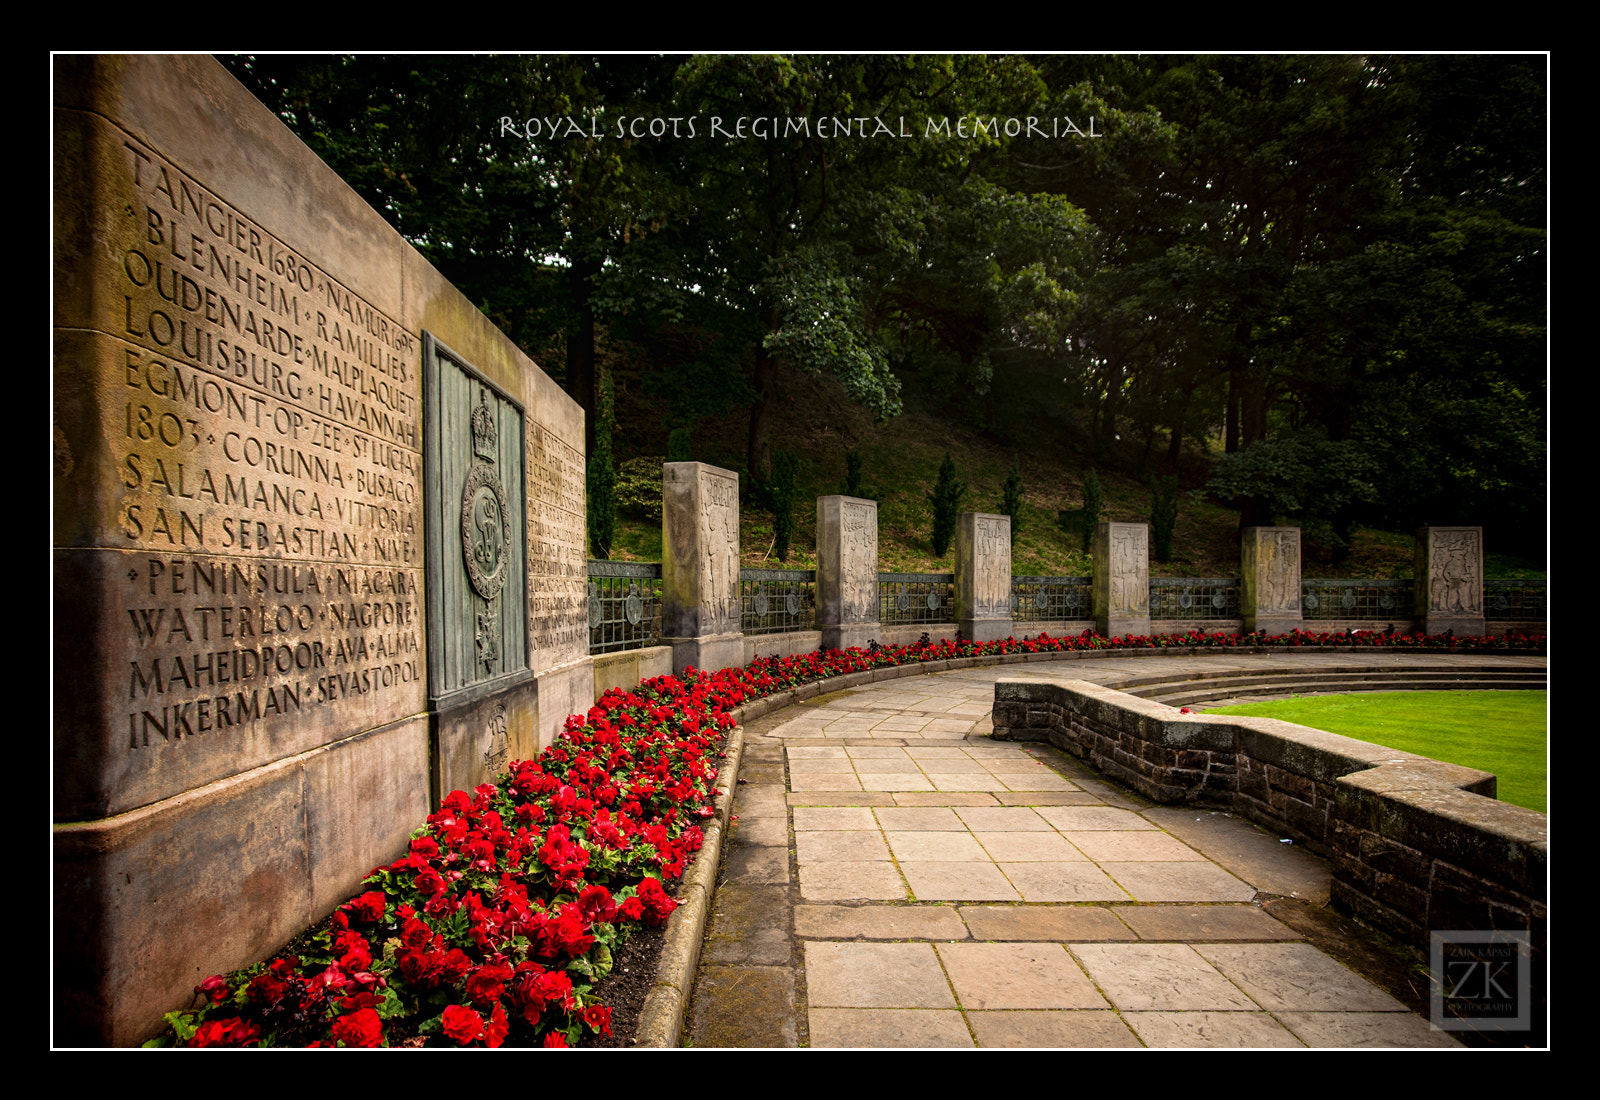 Photograph Royal Scots Regimental Memorial by Zain Kapasi on 500px